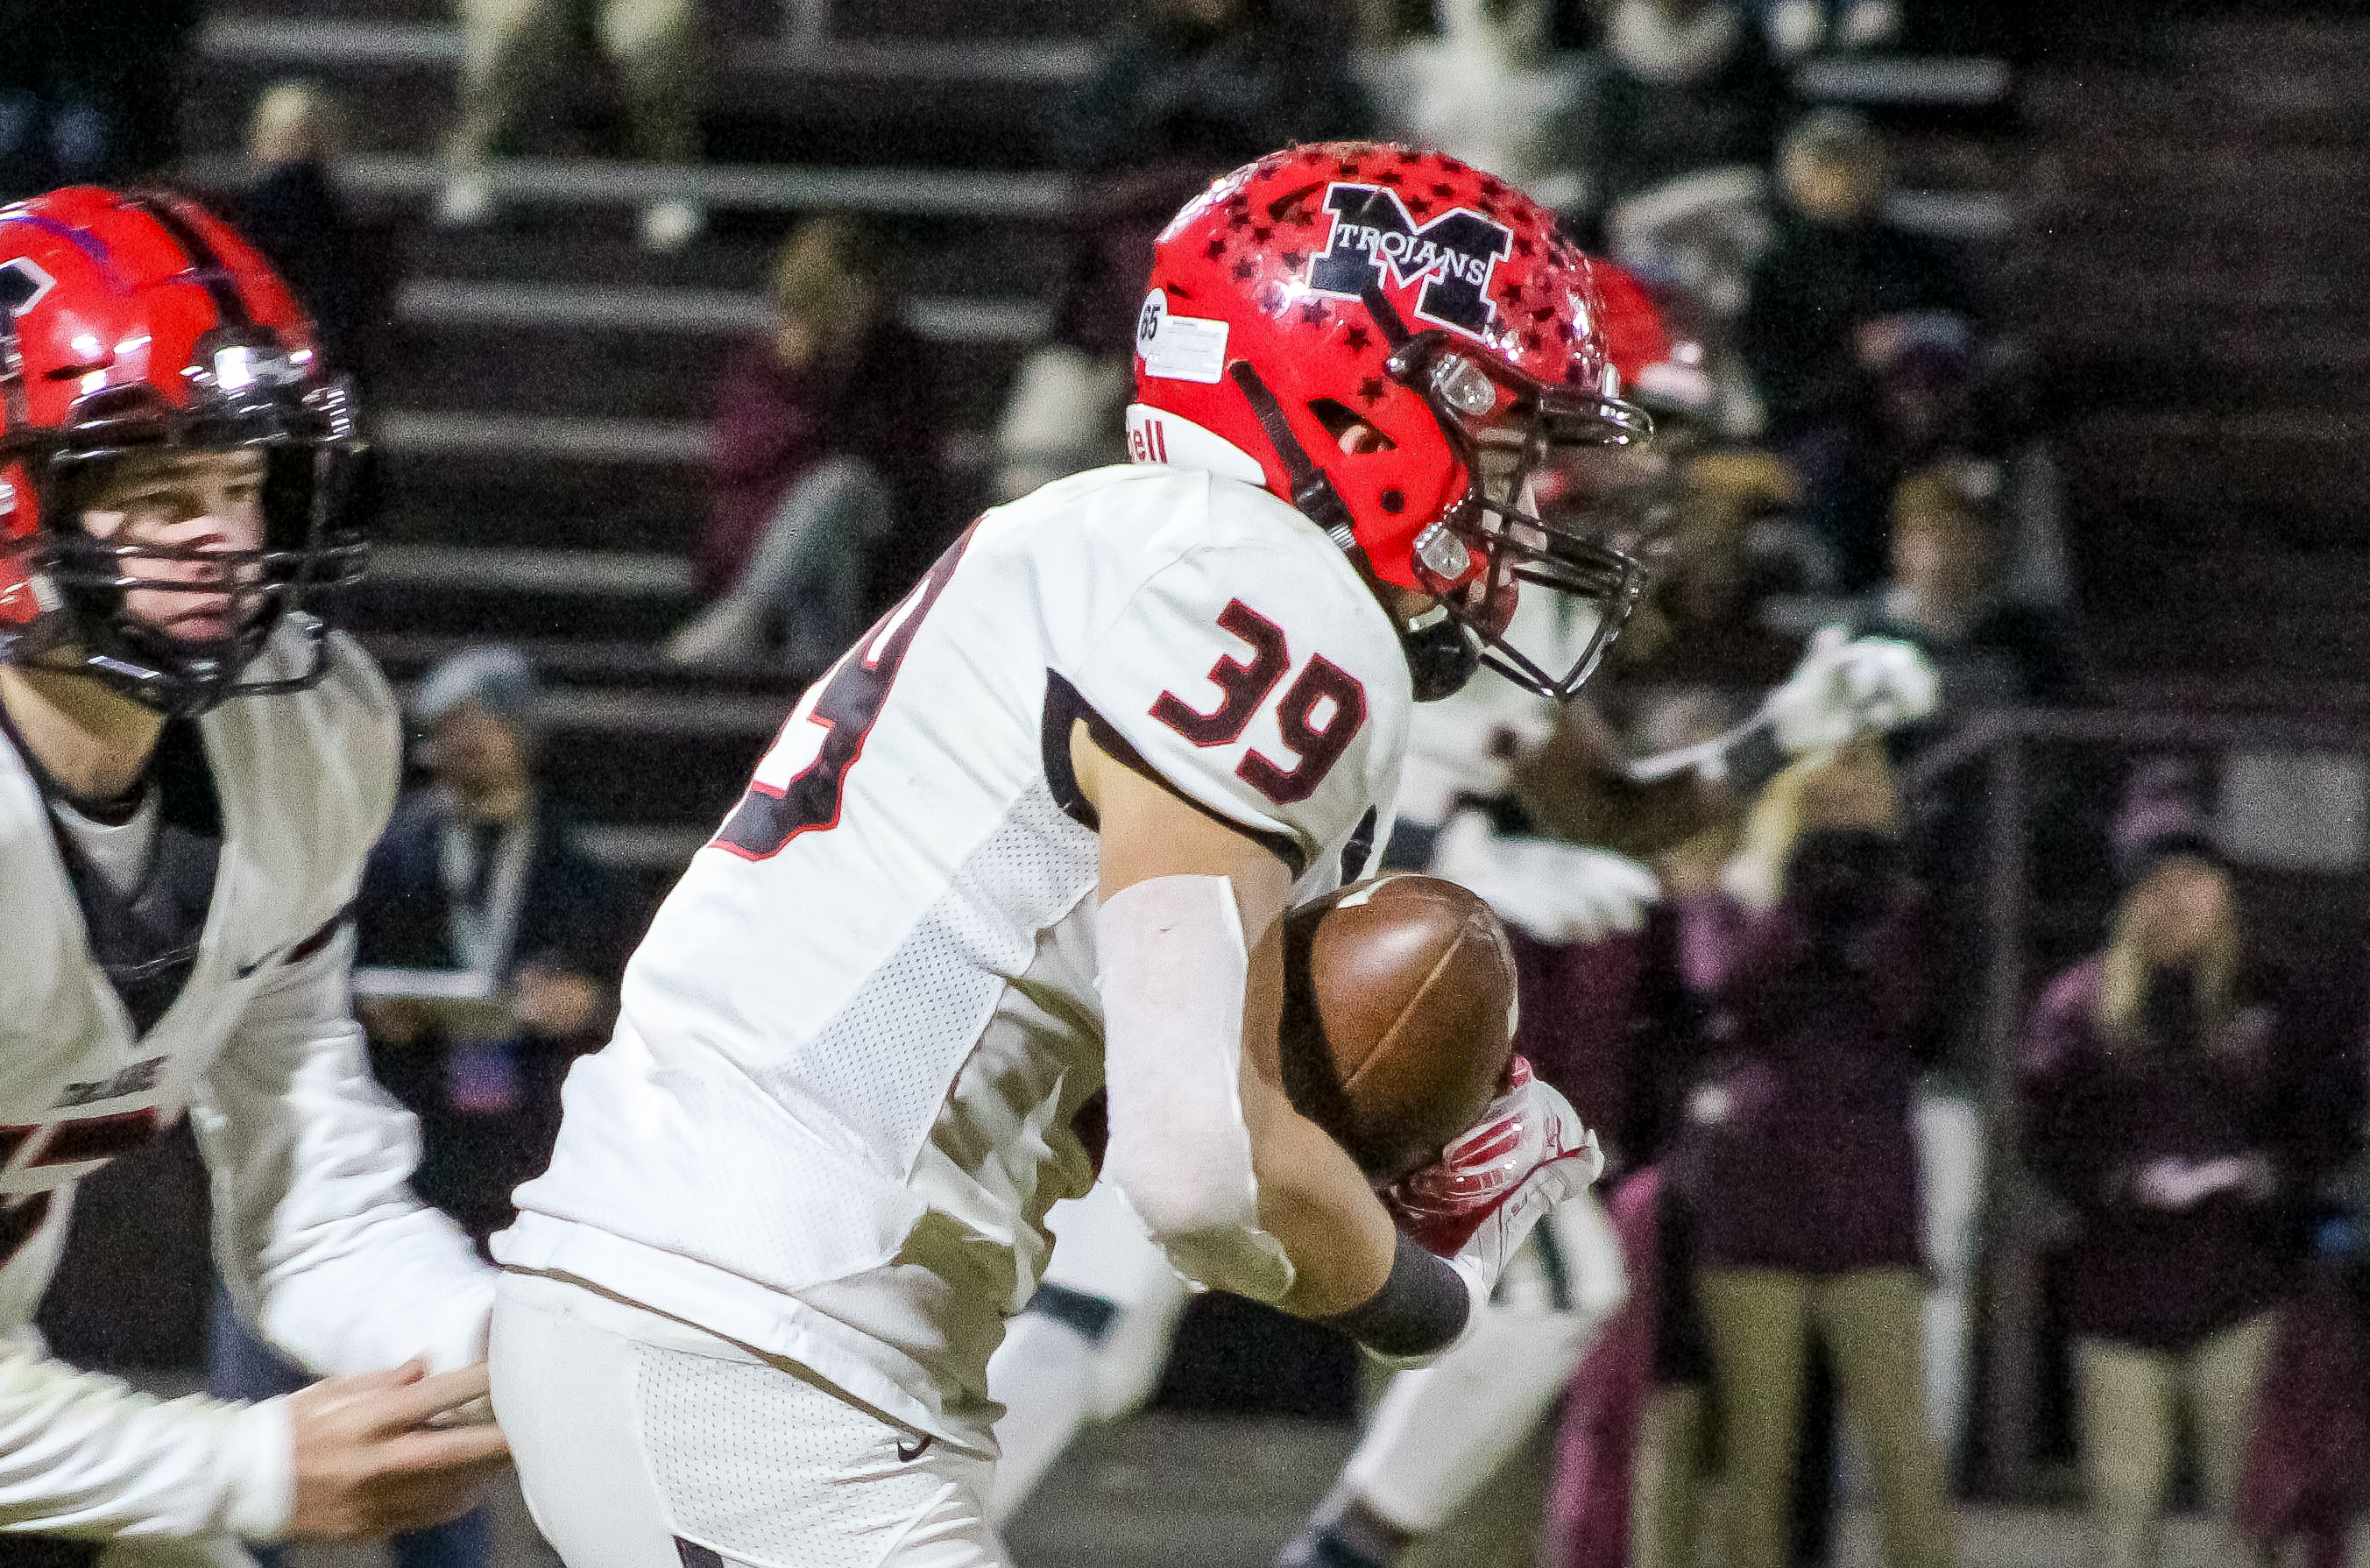 Muscle Shoals RB William Berry